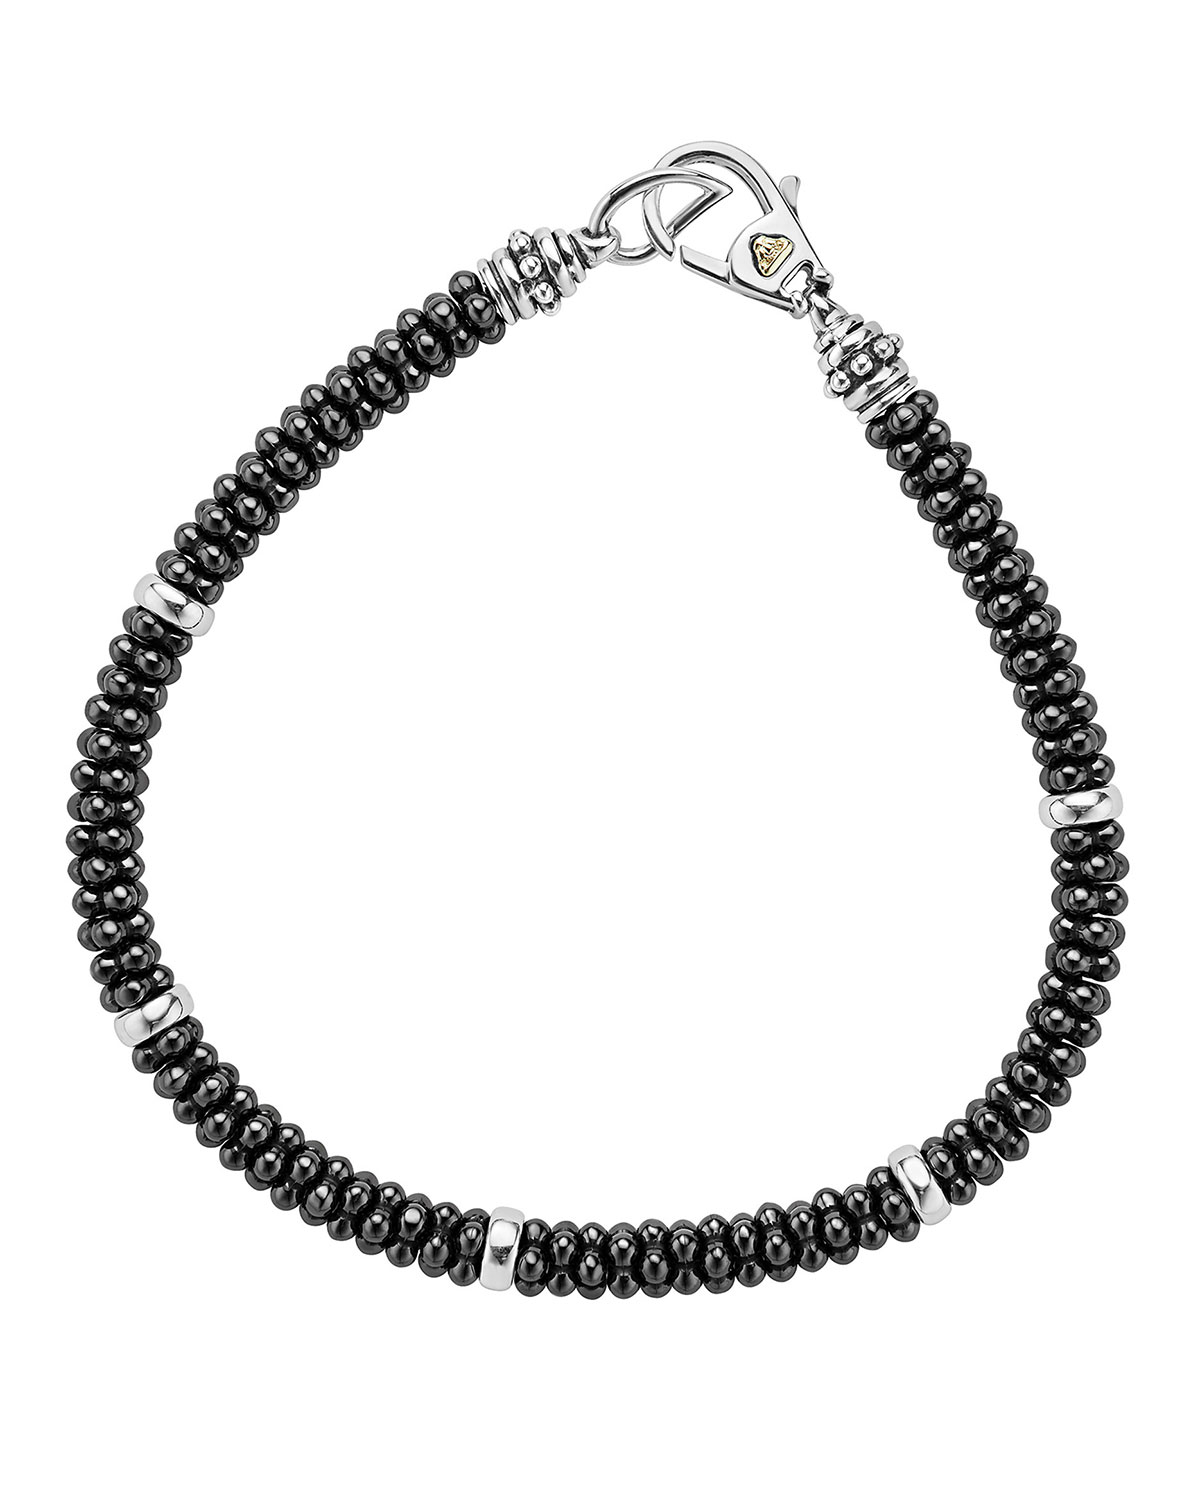 Lagos Accessories CERAMIC BLACK CAVIAR BEADED BRACELET, 7""